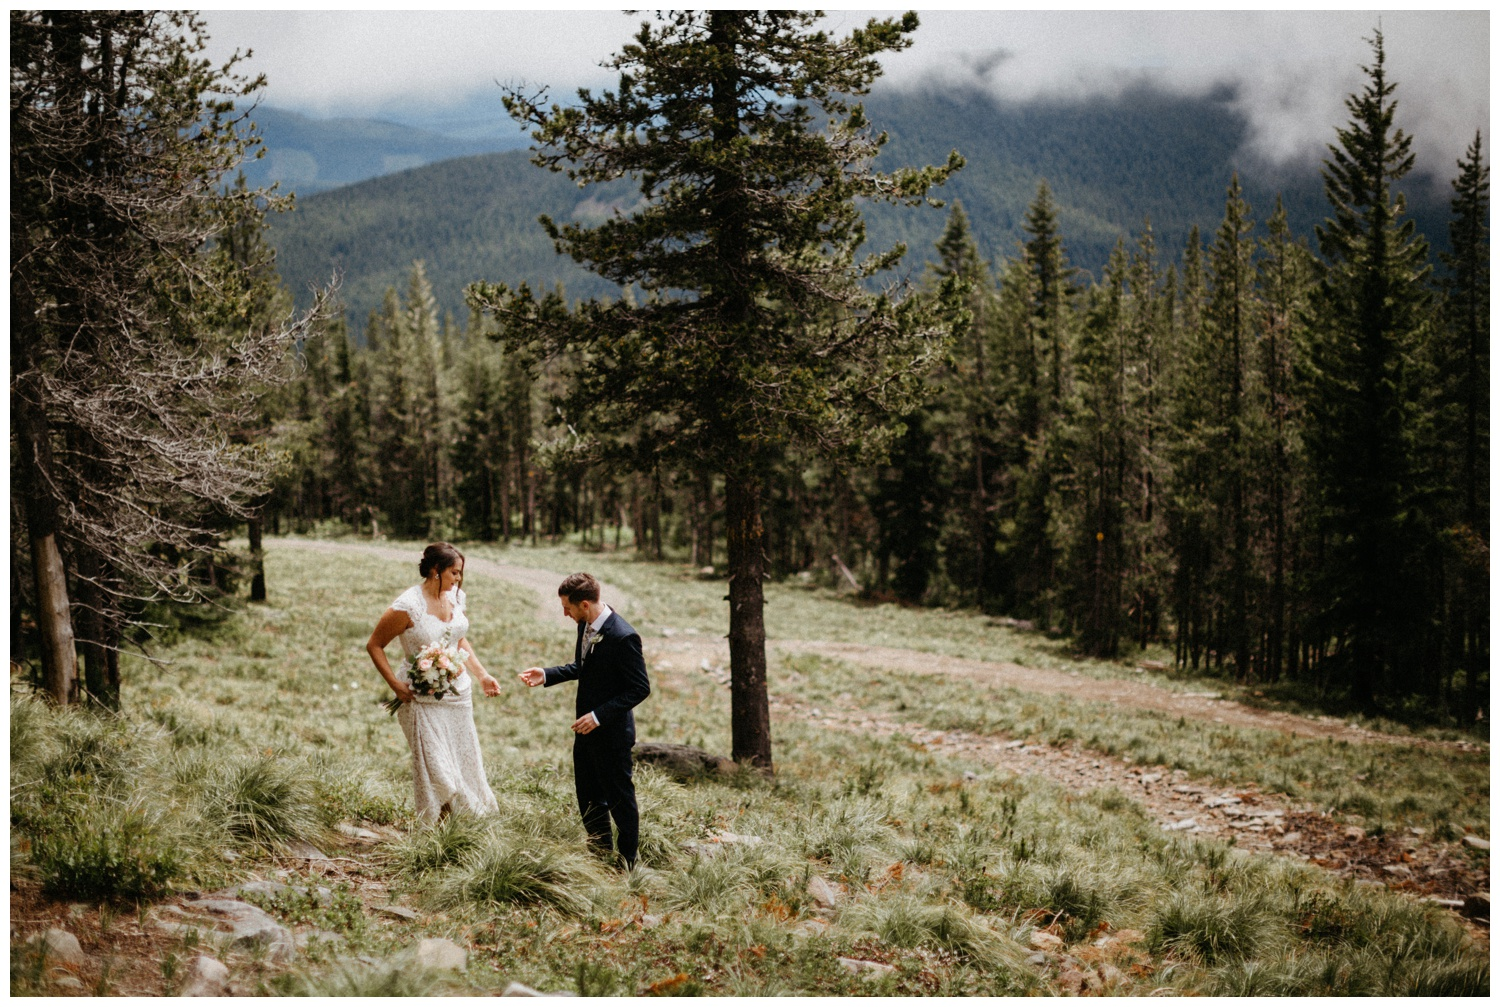 jasmine-j-photography-mt-hood-skibowl-wedding_0022.jpg